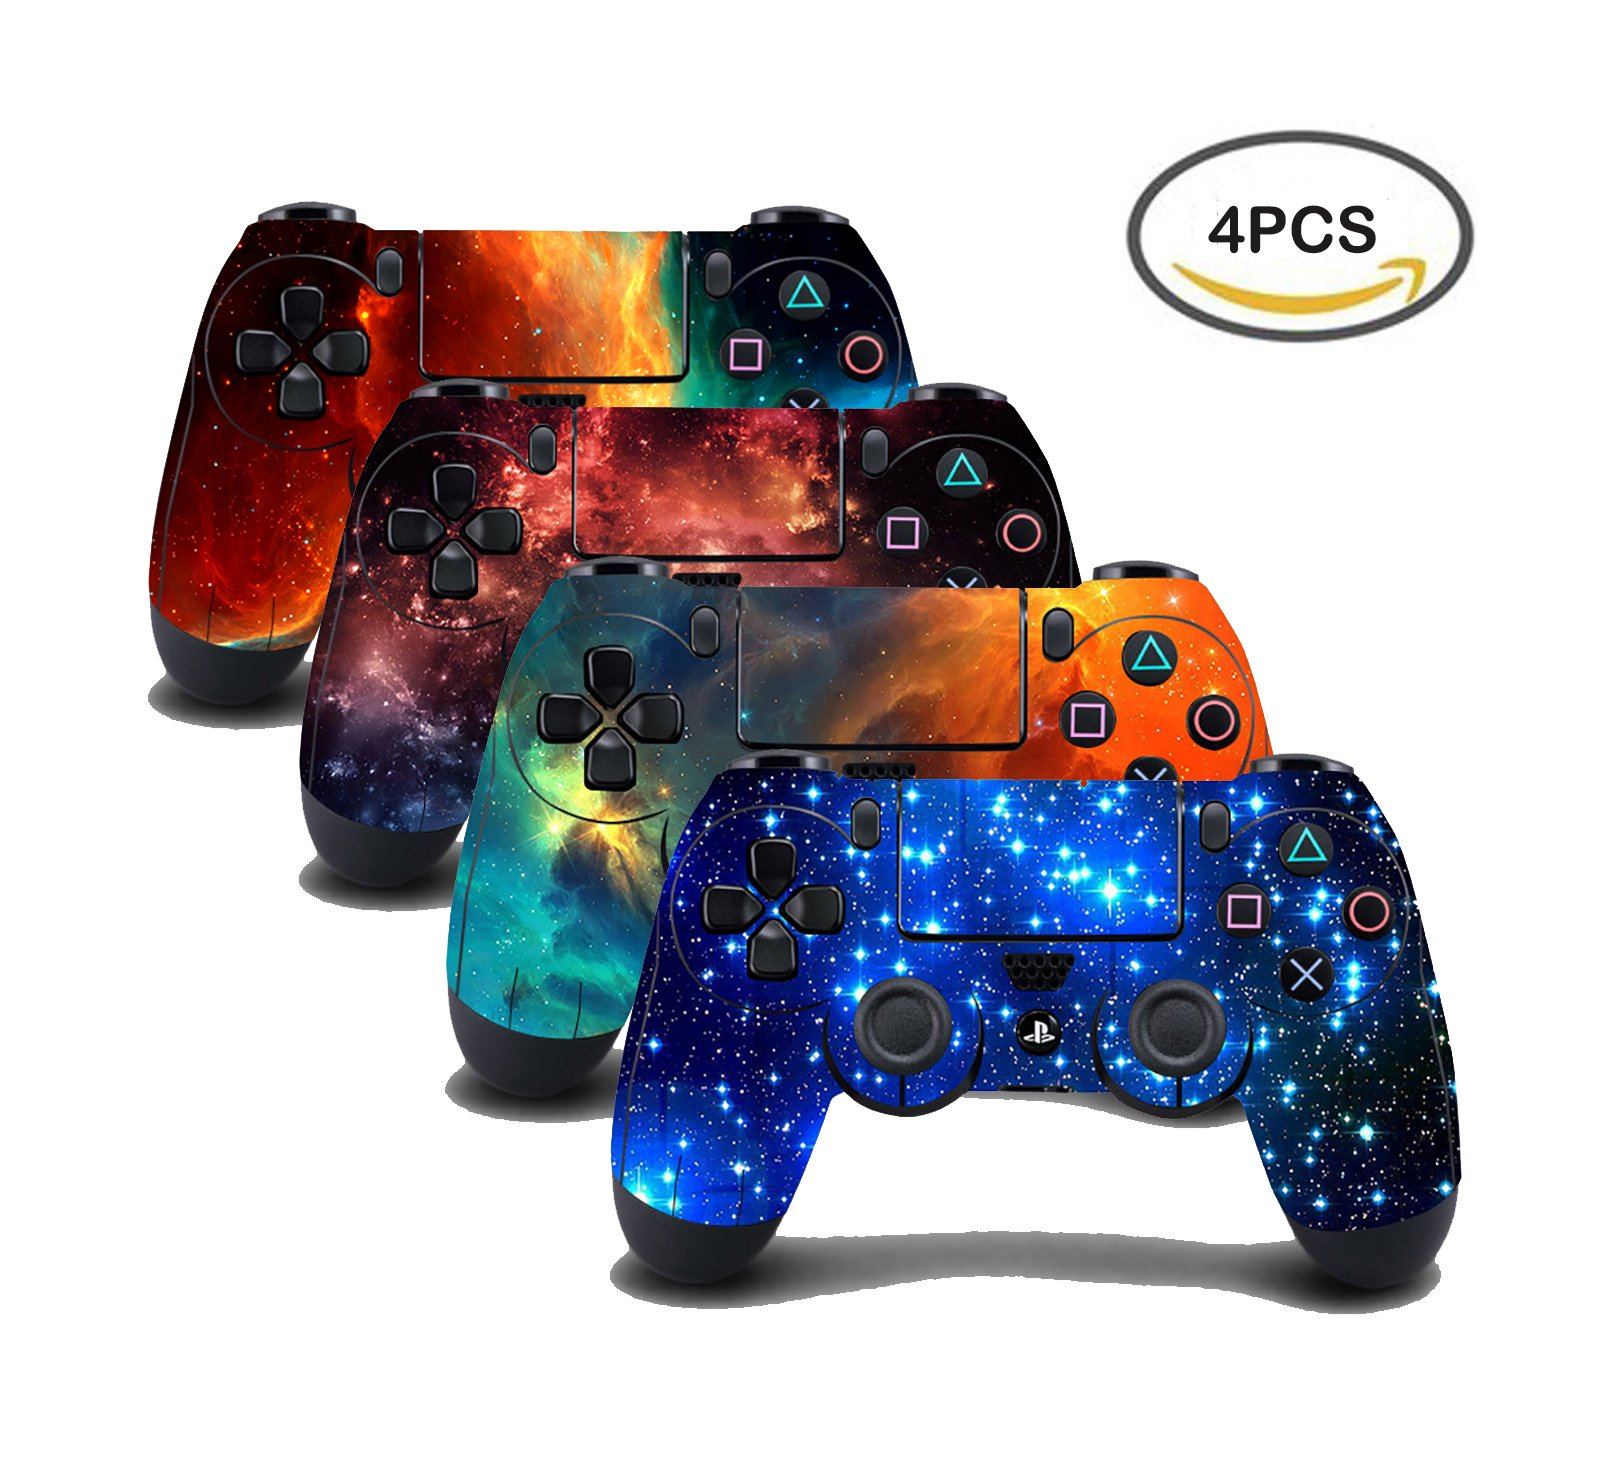 UUShop 4PCS Vinyl Skin Sticker Decal Cover for Playstation4 PS4 Controller - Galaxy Starry - 4 differences style by UUShop